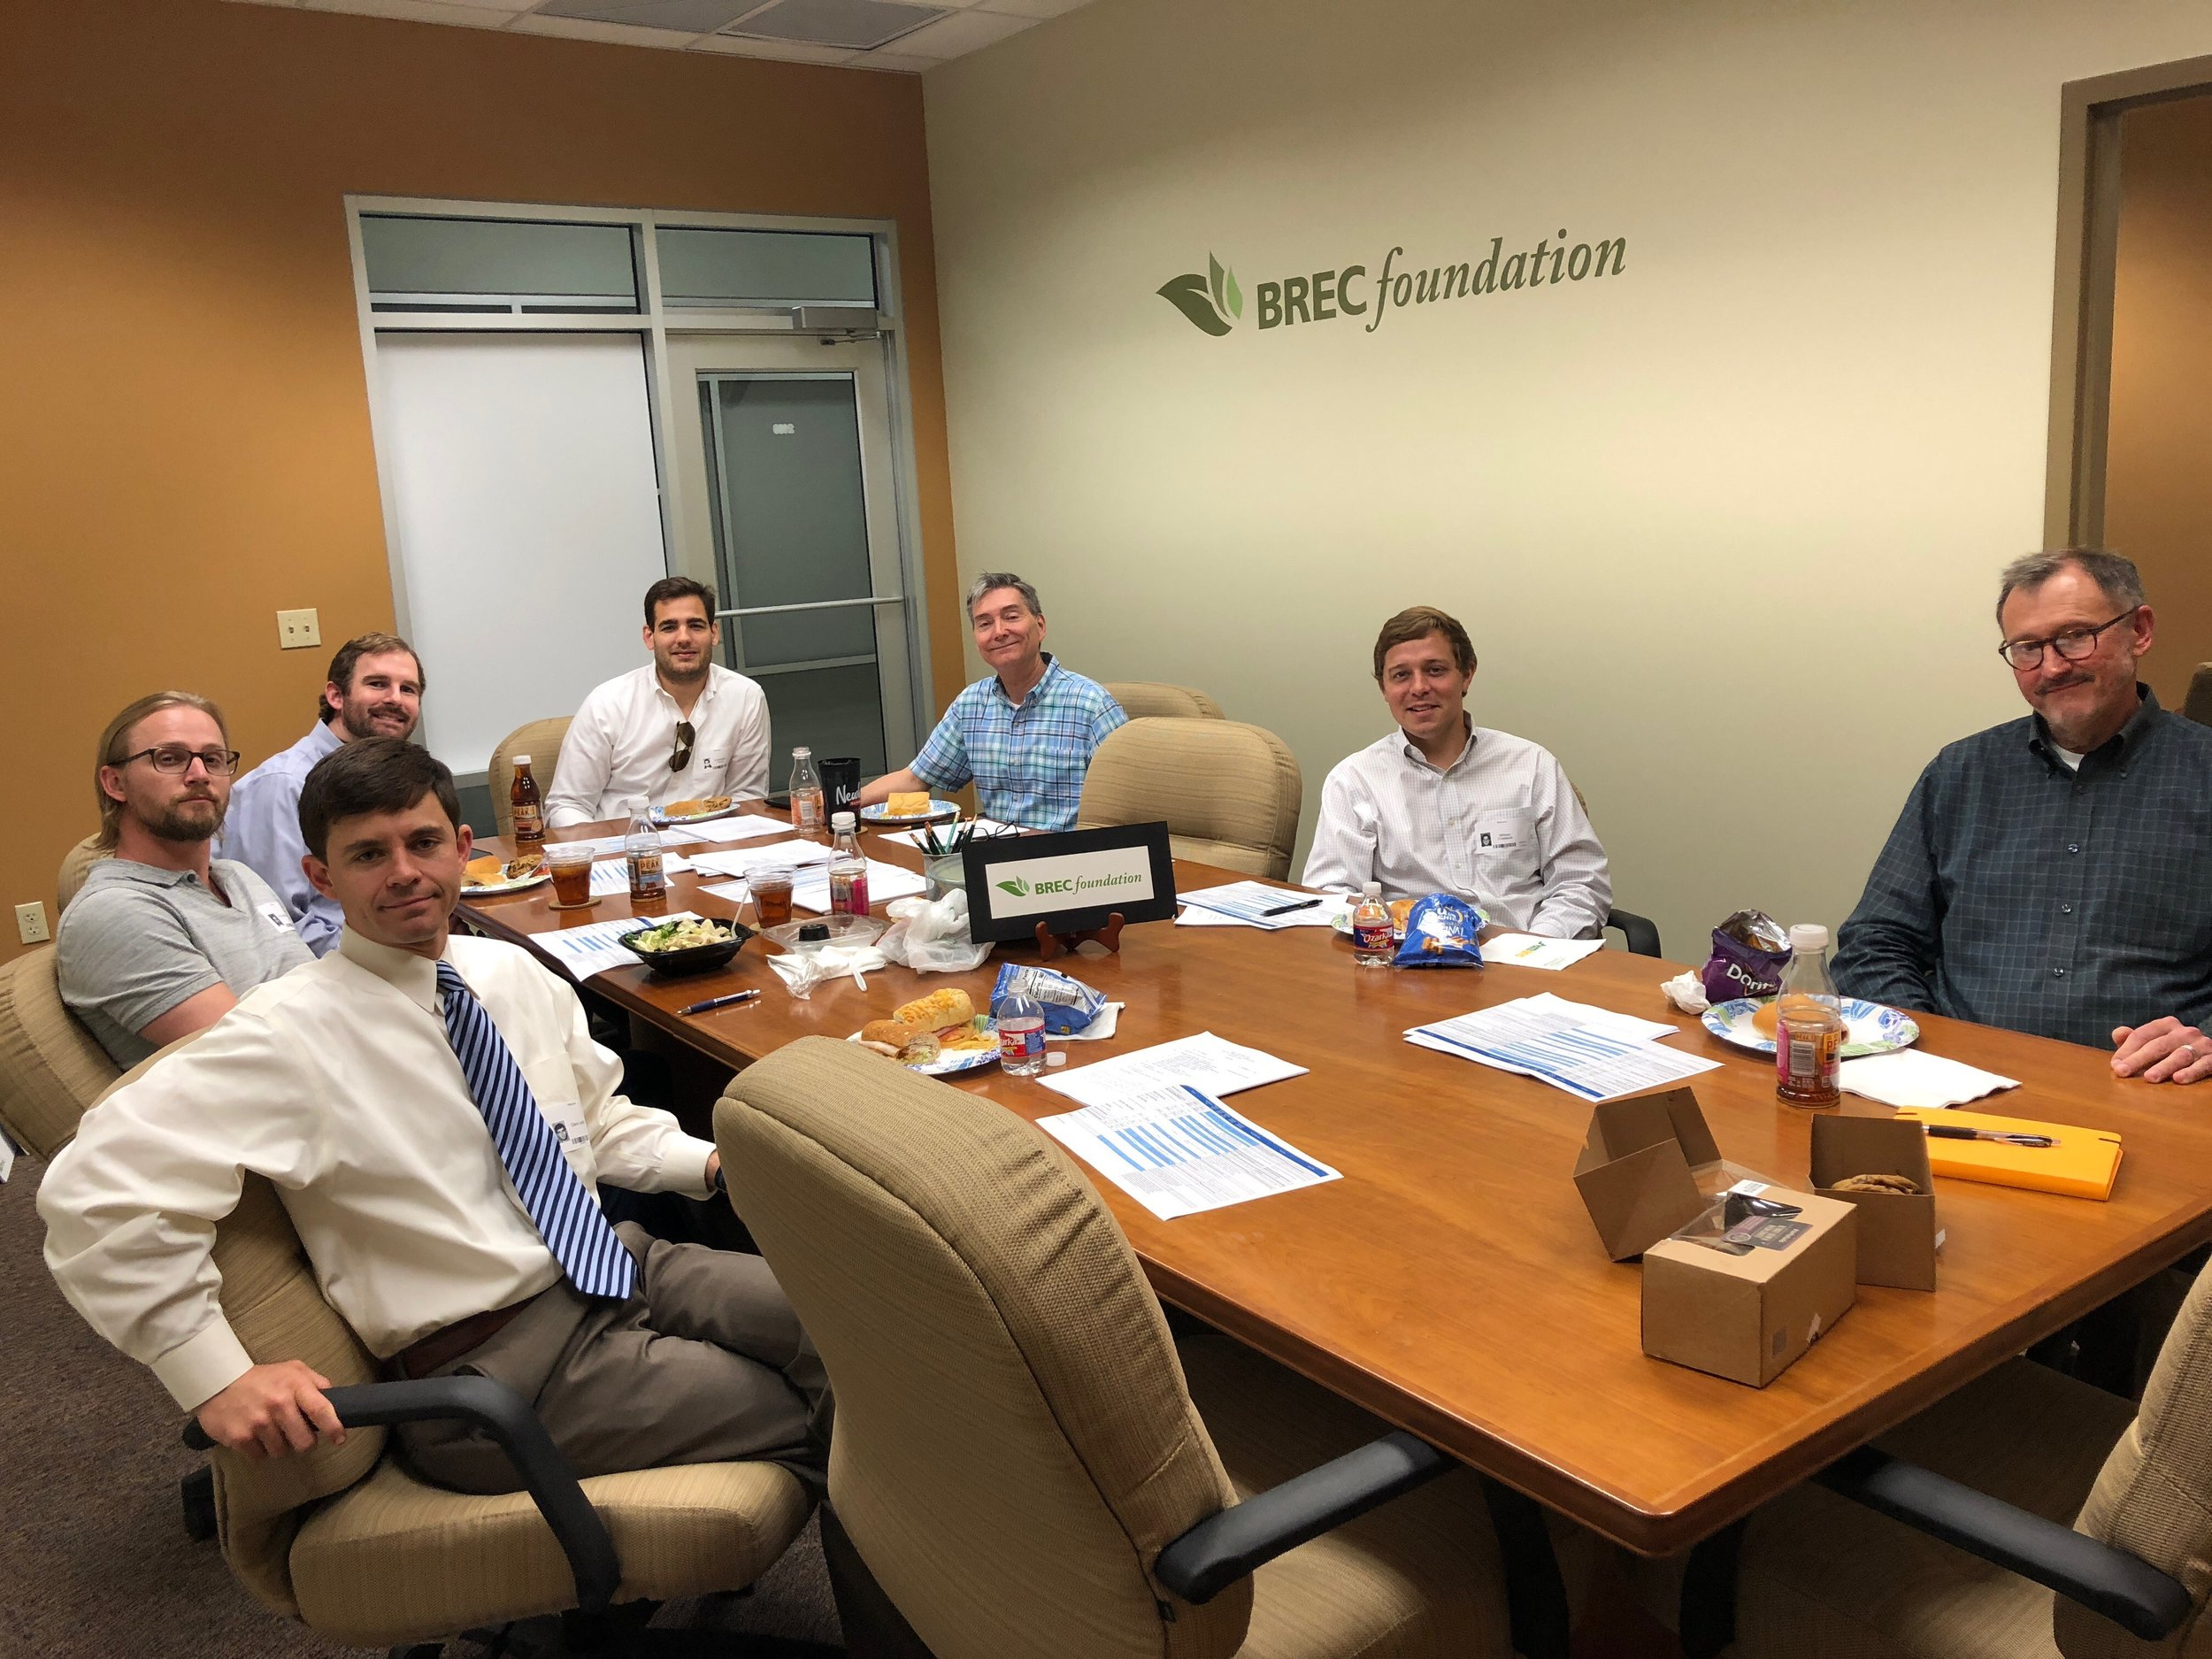 """""""Members of the Special Projects Committee of the BREC Foundation met on March 19, 2018 to discuss over 20 fund raising campaigns. Pictured, from the left, clockwise) are Glenn Ledet, Roy Heidelberg, John Grinton, Chris Ferrari (Vice Chairman), Carl Stages (Executive Director), Will Chadwick and BREC Assistant Superintendent Reed Richard."""""""